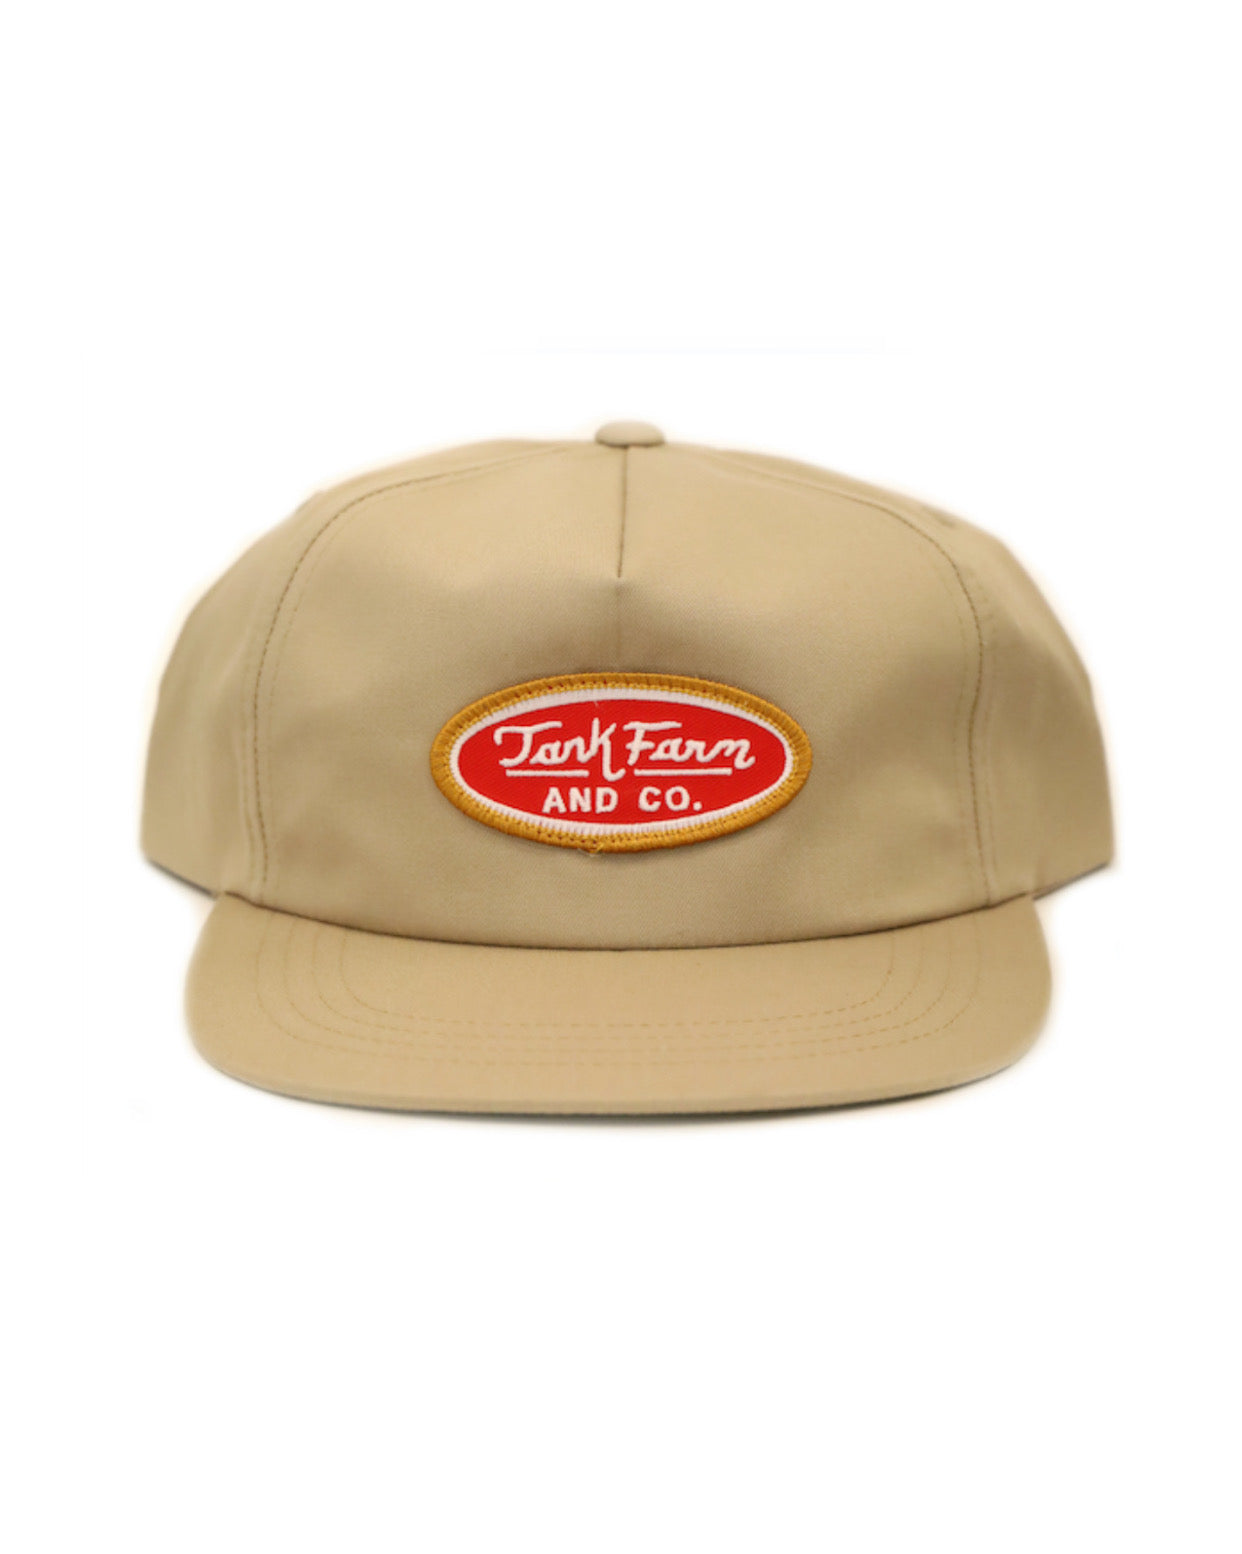 FUELER PATCH SNAPBACK - KHAKI - Tankfarm & Co.